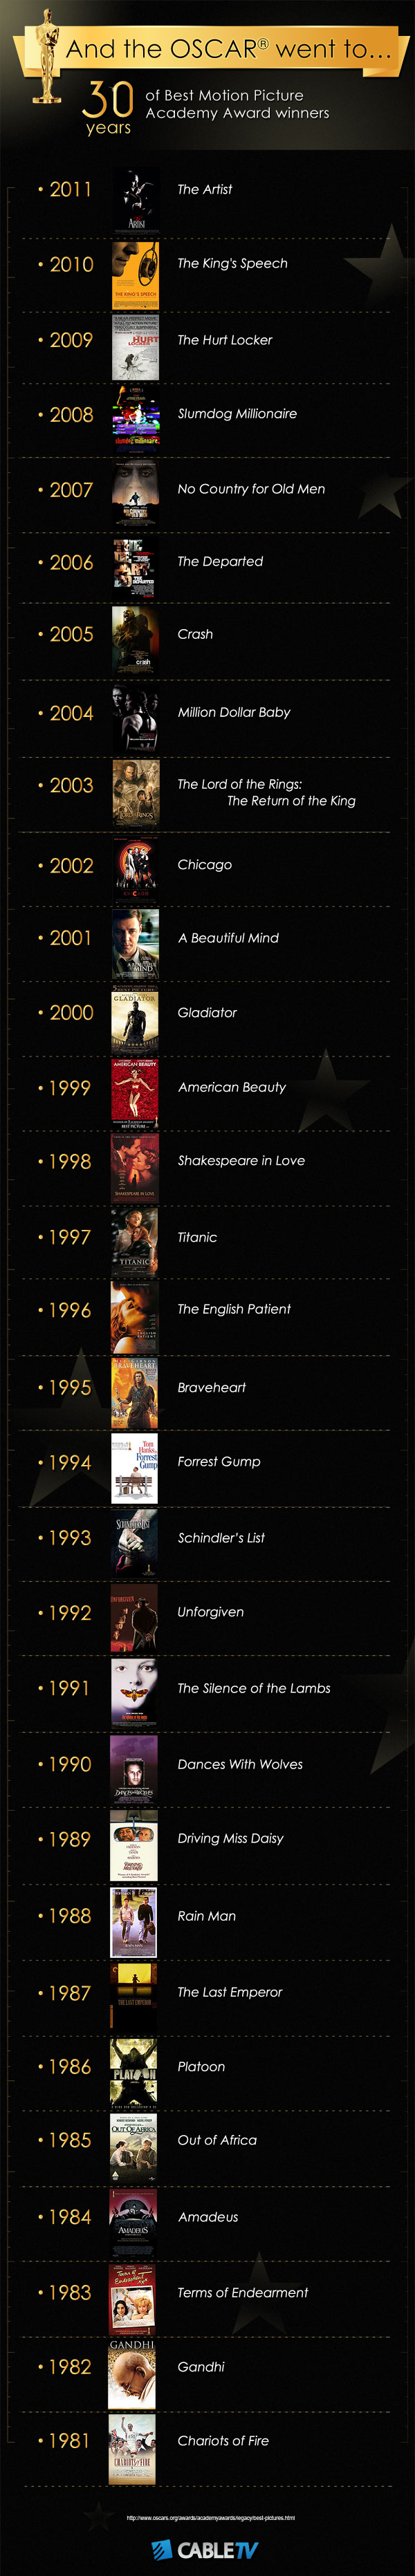 30-years-of-best-picture-winners